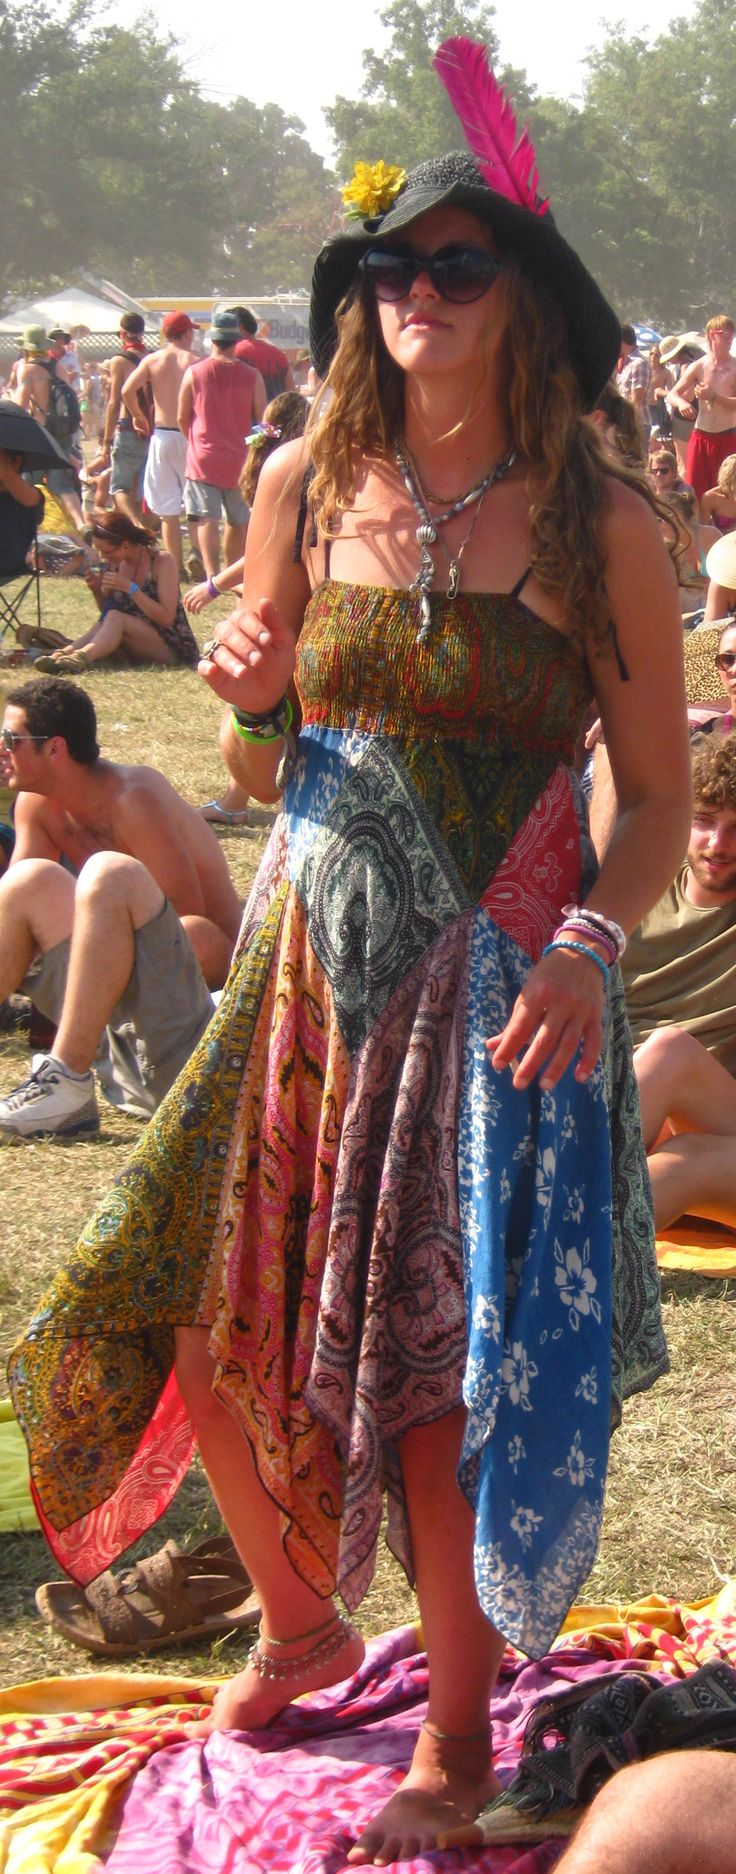 Woodstock 1969 Fashion is HOT again in 2014 -- Epic Rights along with Perryscope Represents Woodstock for Branding and Licensing